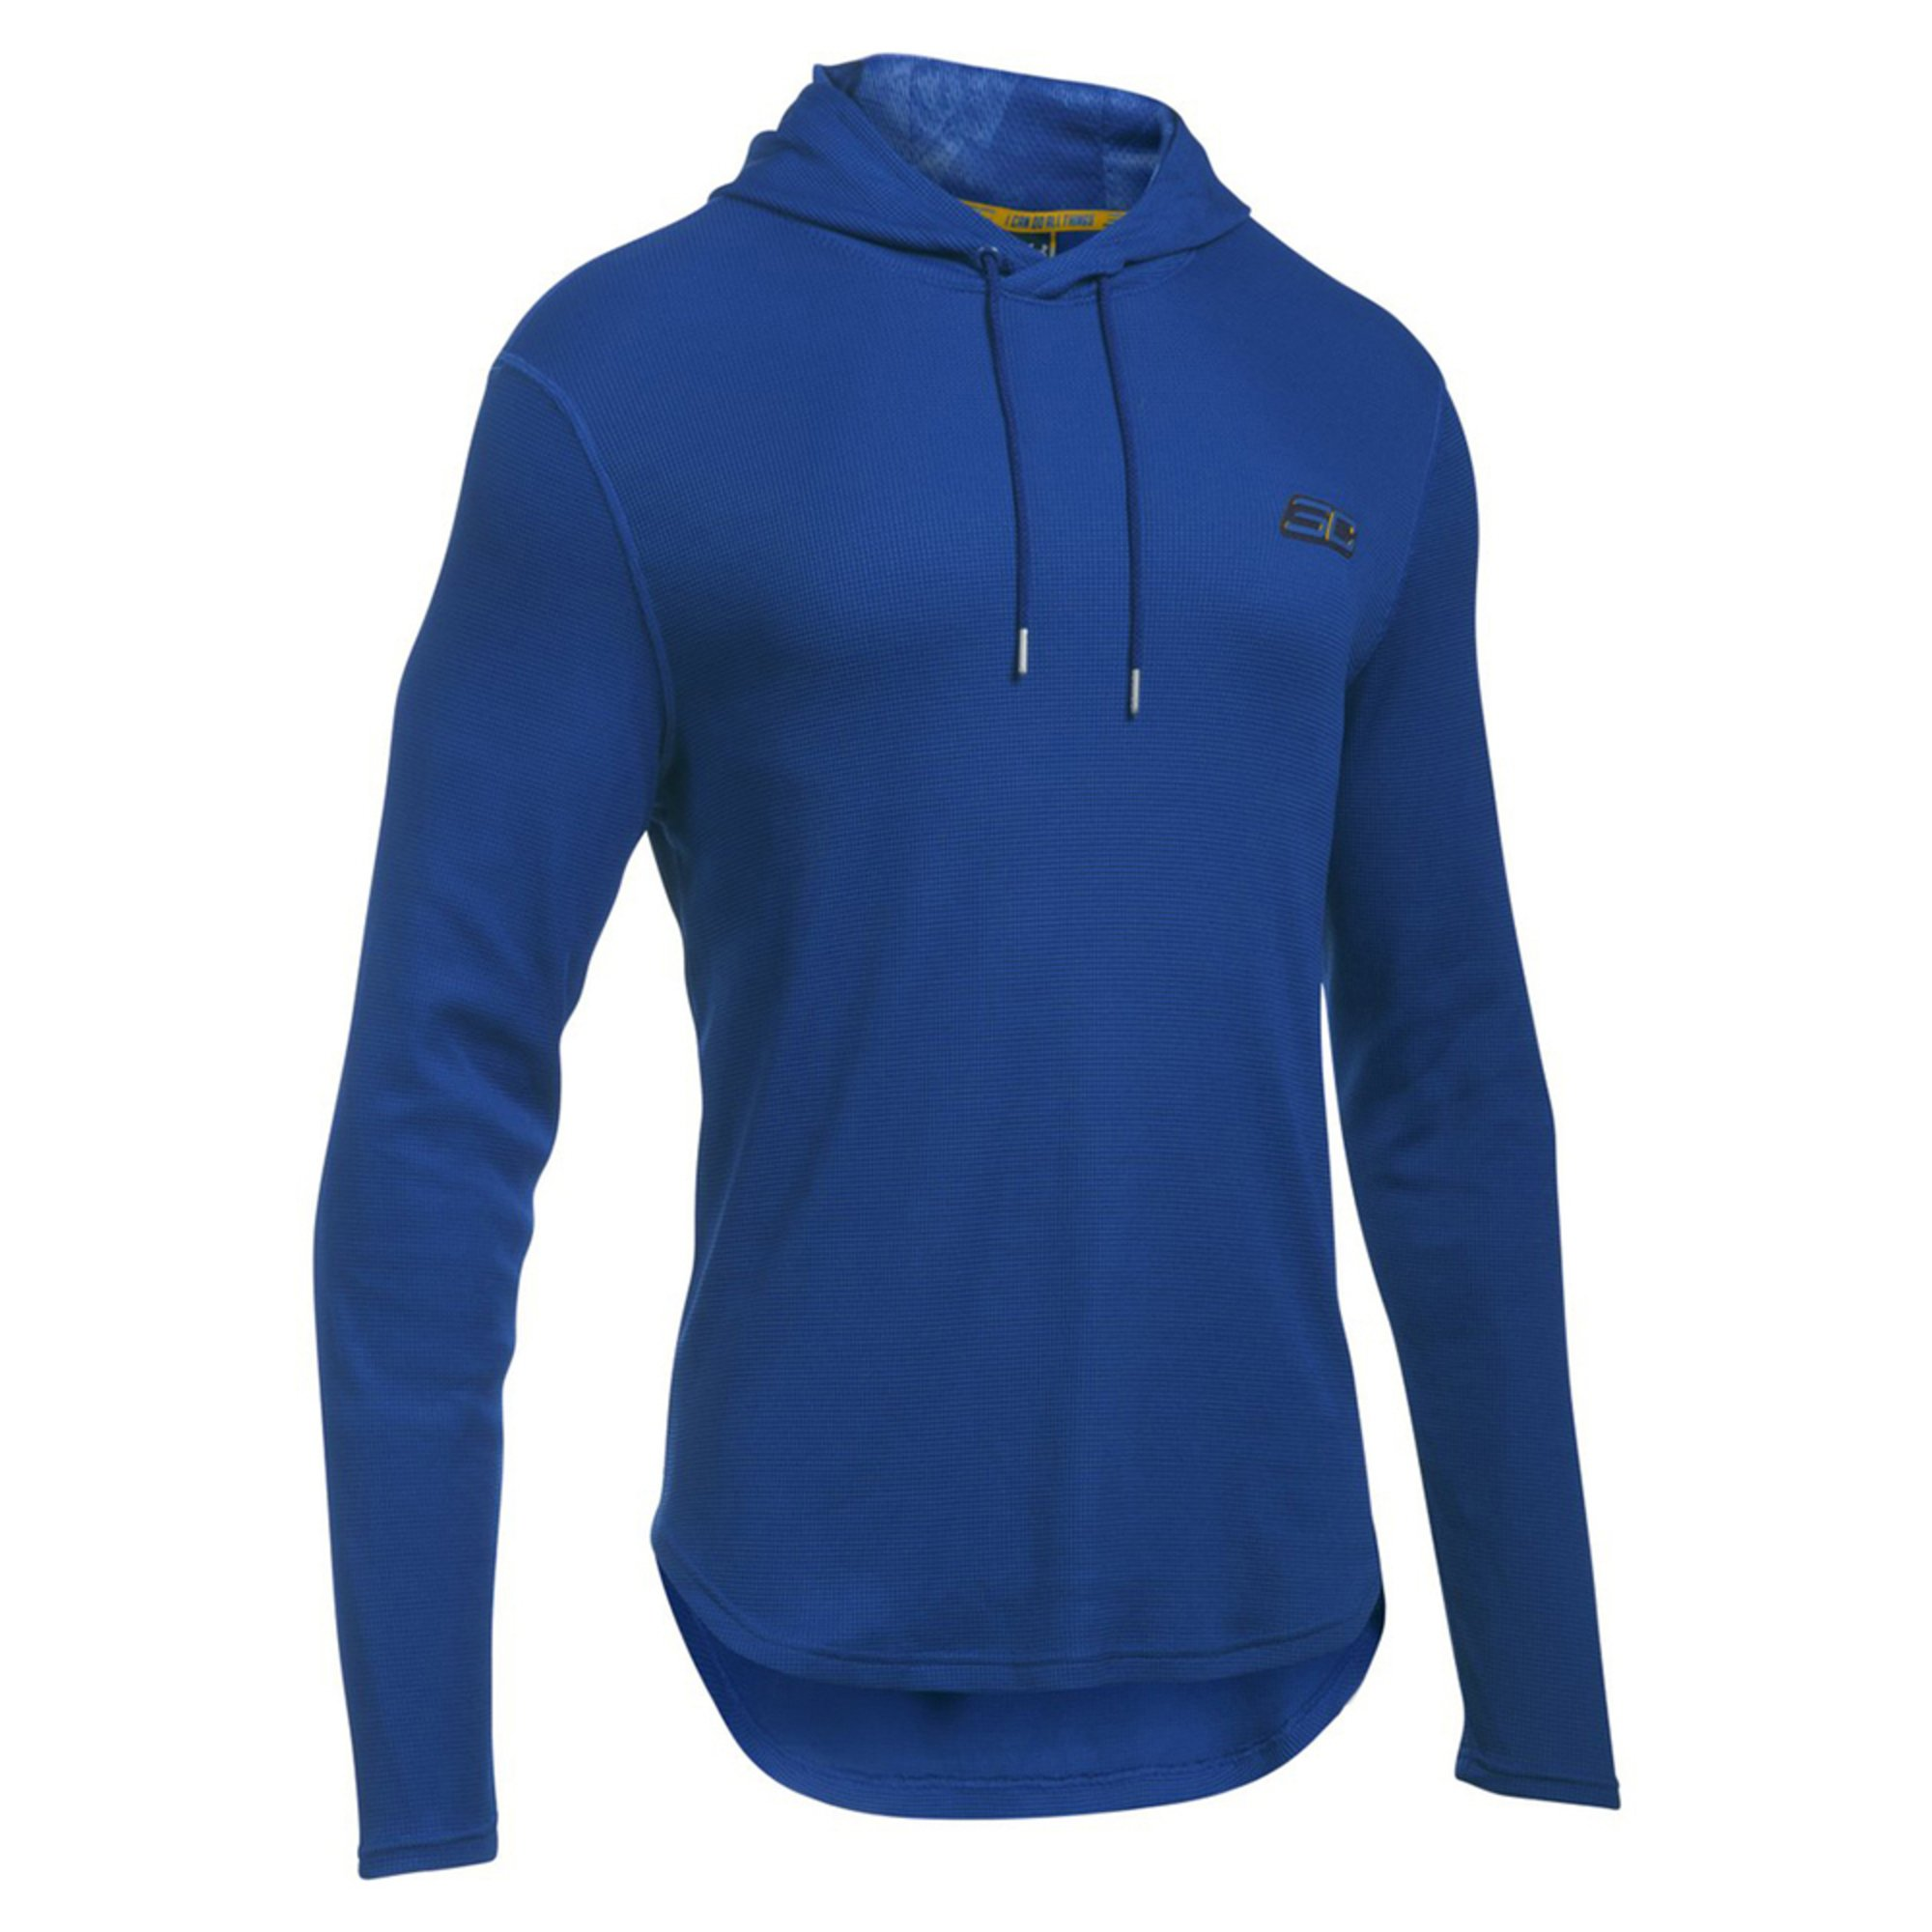 Under armour men 39 s sc30 thermal hoodie men 39 s apparel for Under armour men s shirts clearance